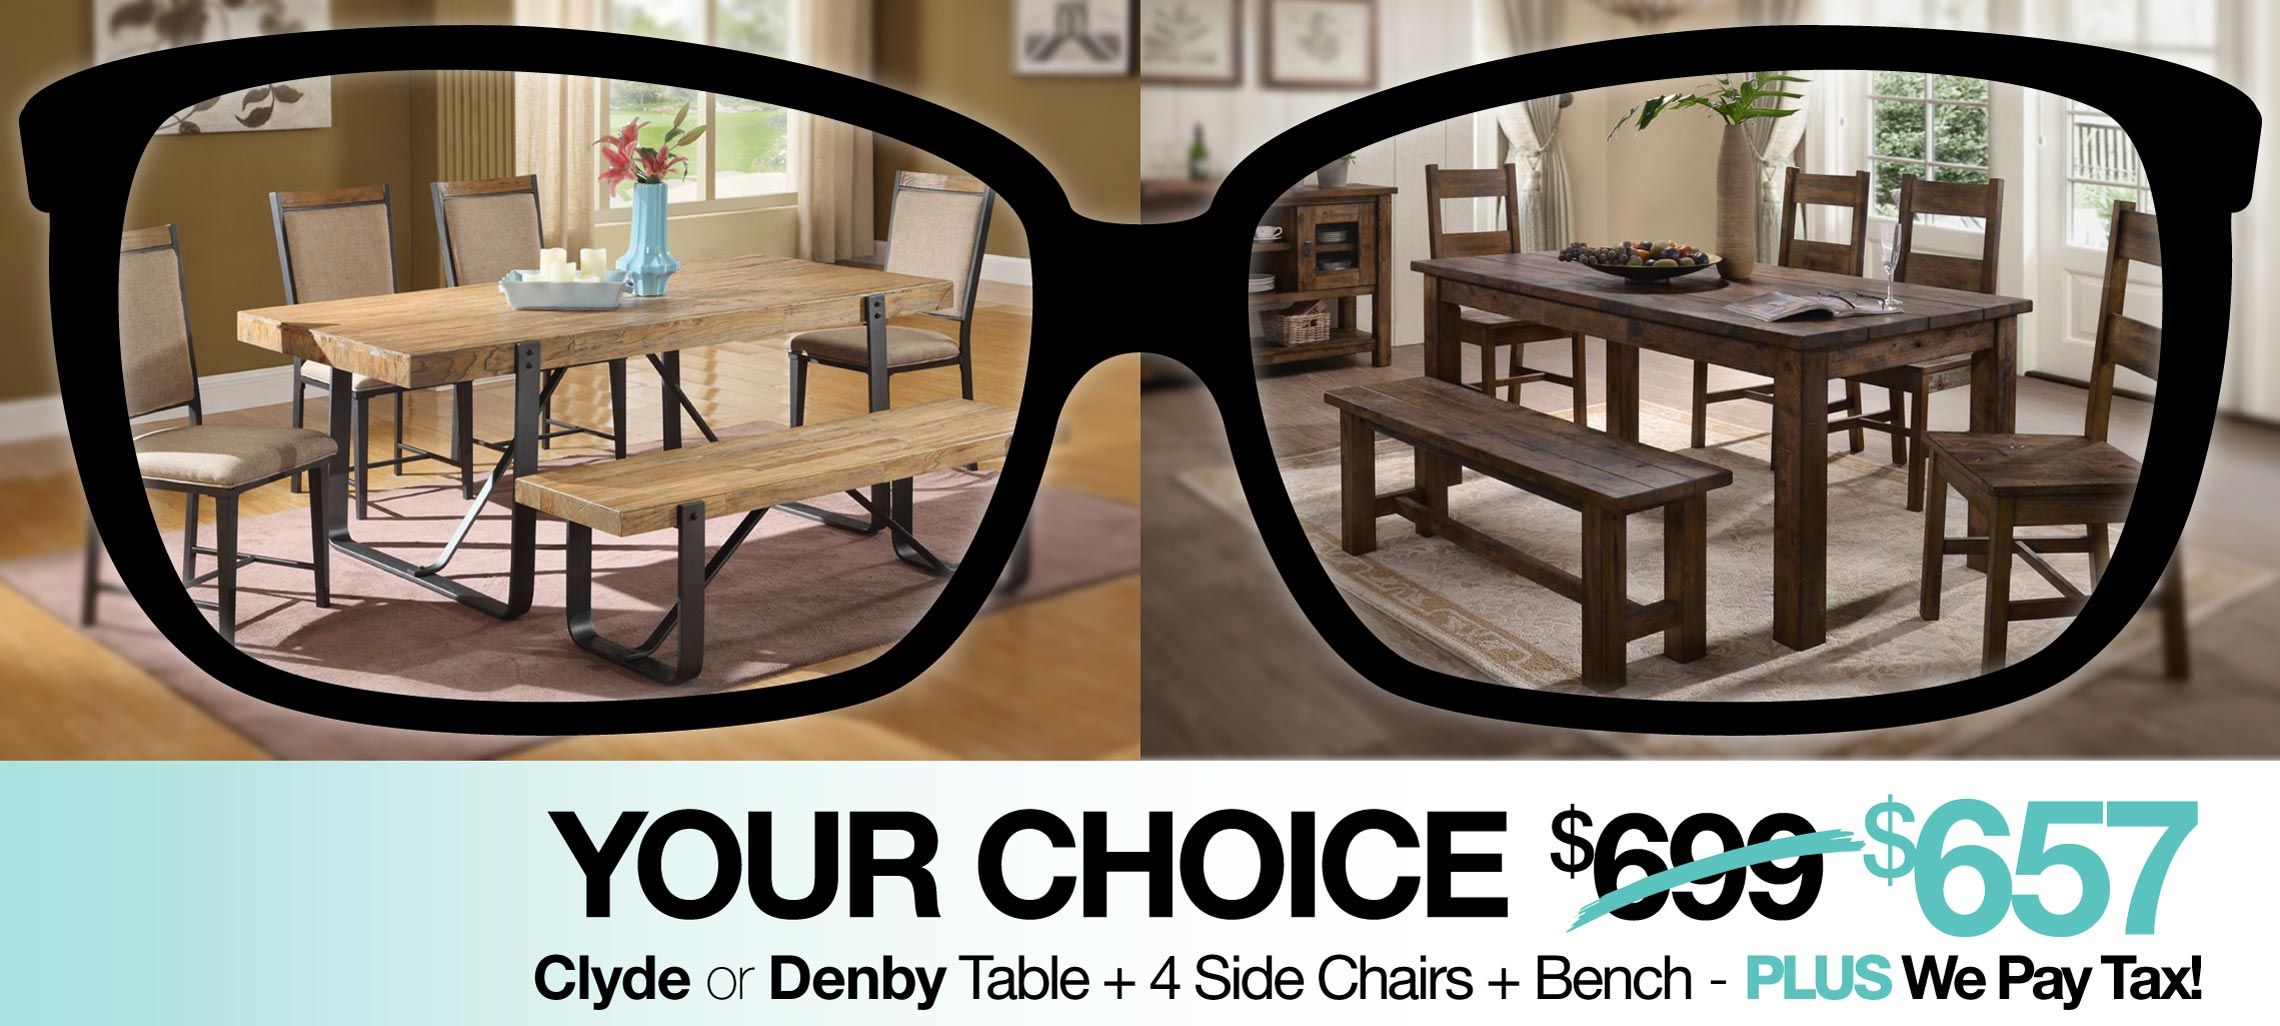 Your Choice - Clyde or Denby Dining Sets